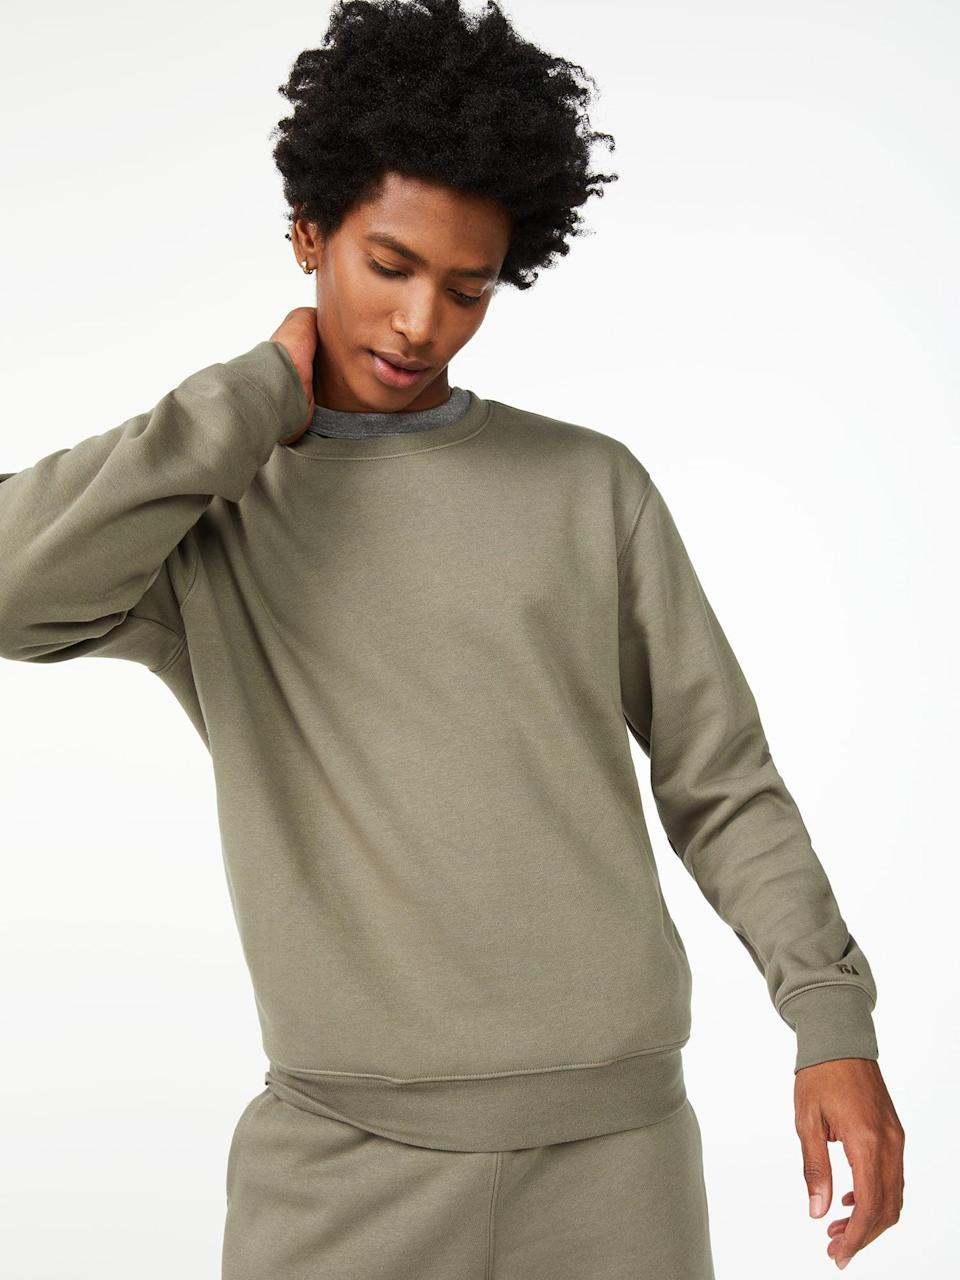 <p>Pair this <span>Free Assembly Men's Fleece Crewneck</span> ($24) with the matching <span>Free Assembly Men's Fleece Cargo Joggers</span> ($24) if you want to gift him a complete outfit to wear all winter long. </p>